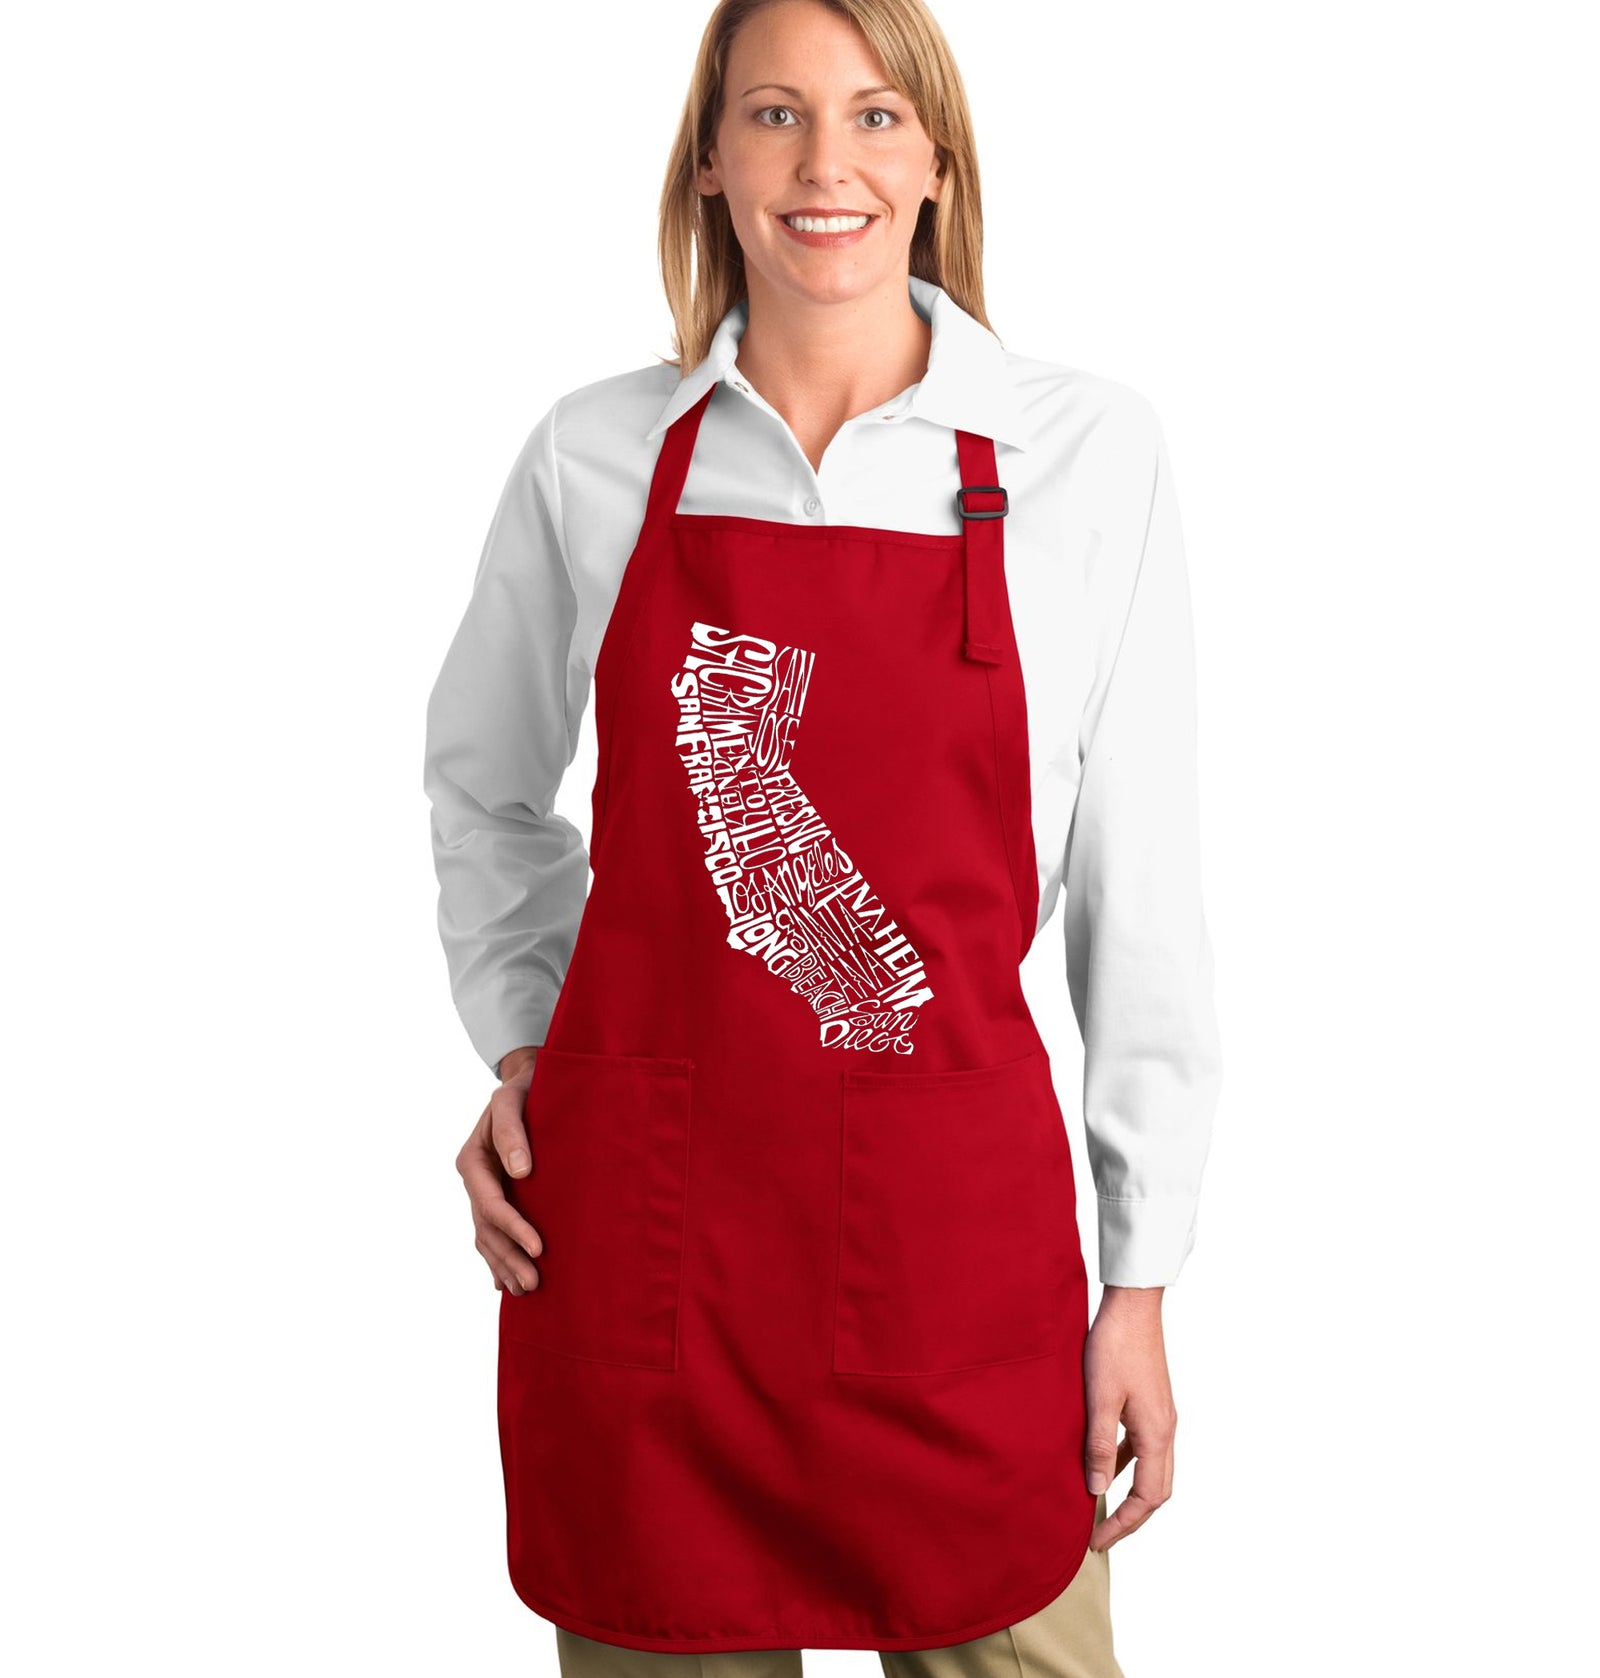 Los Angeles Pop Art Full Length Apron - California State